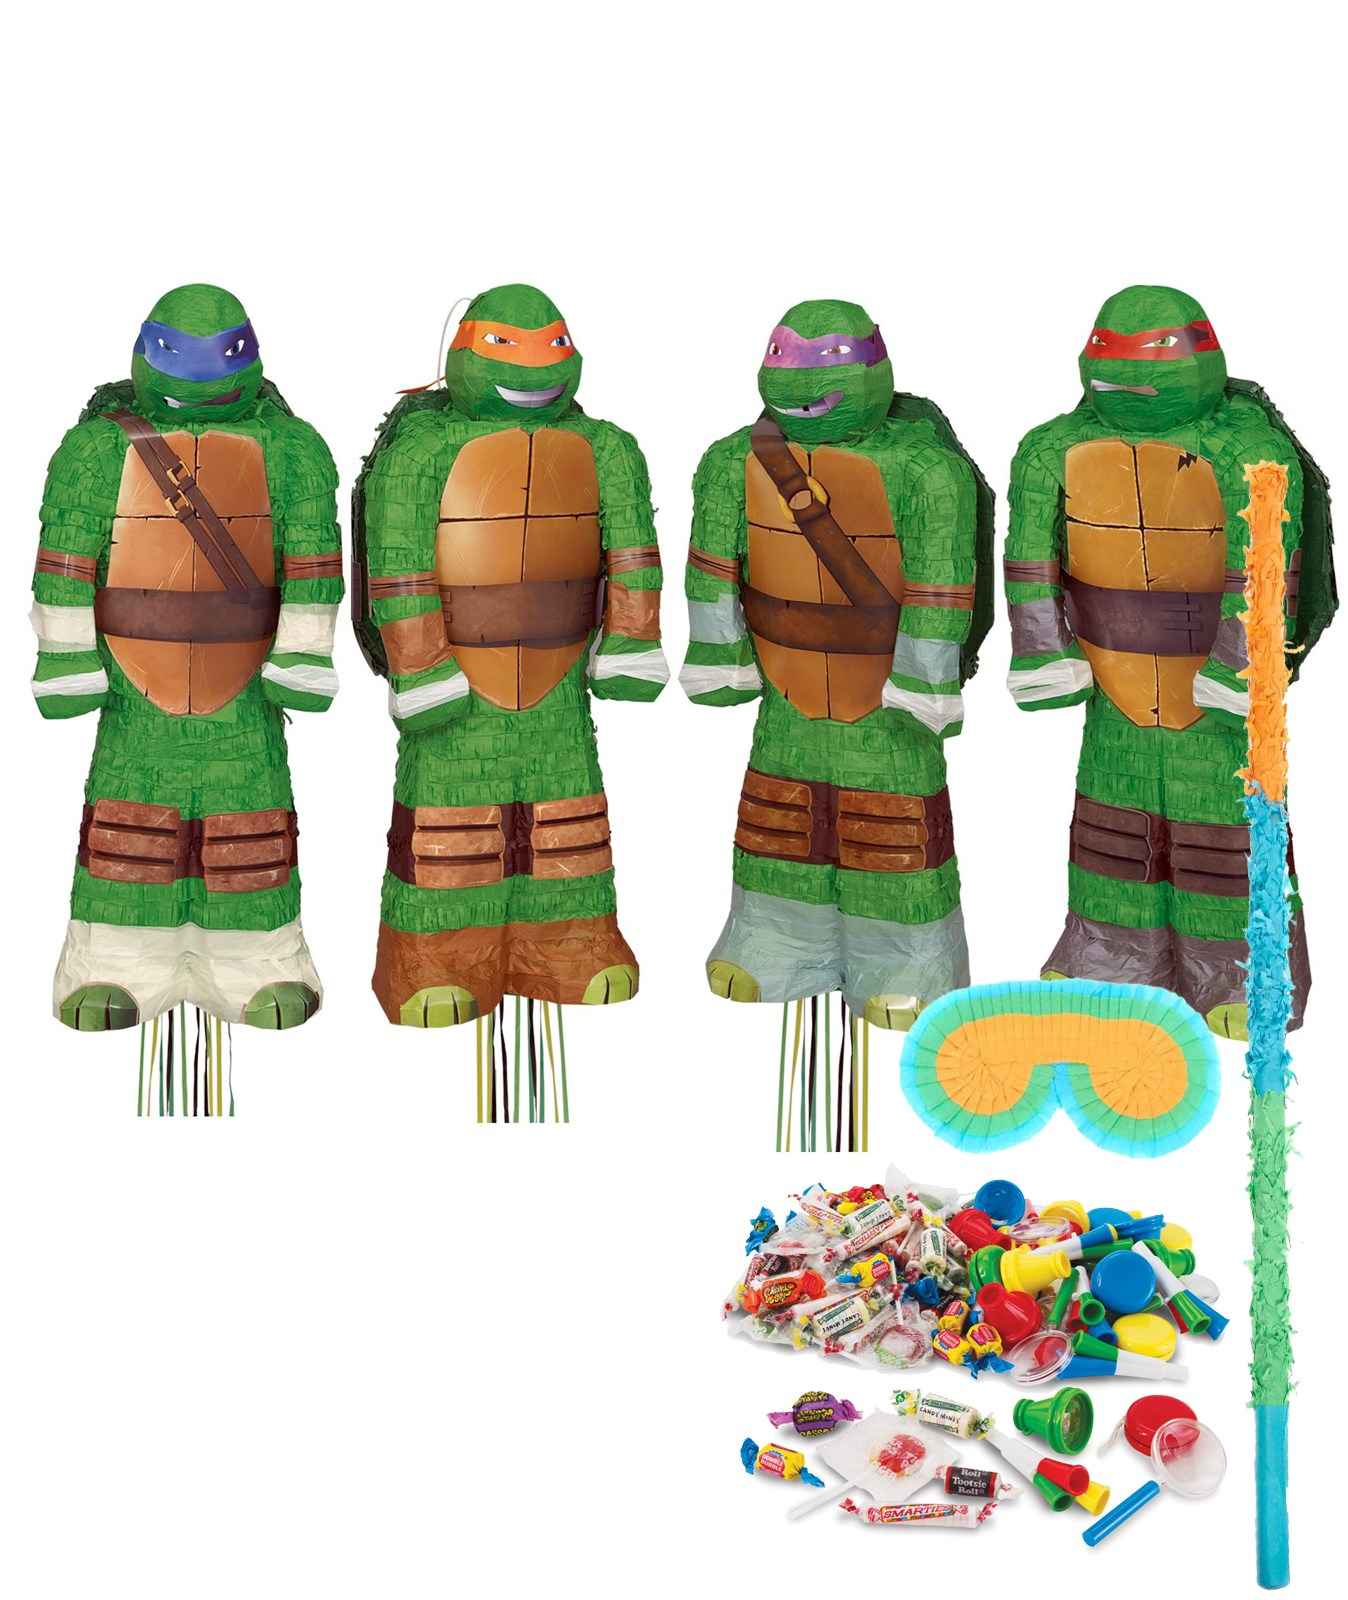 Teenage Mutant Ninja Turtles Shaped Pinata Kit